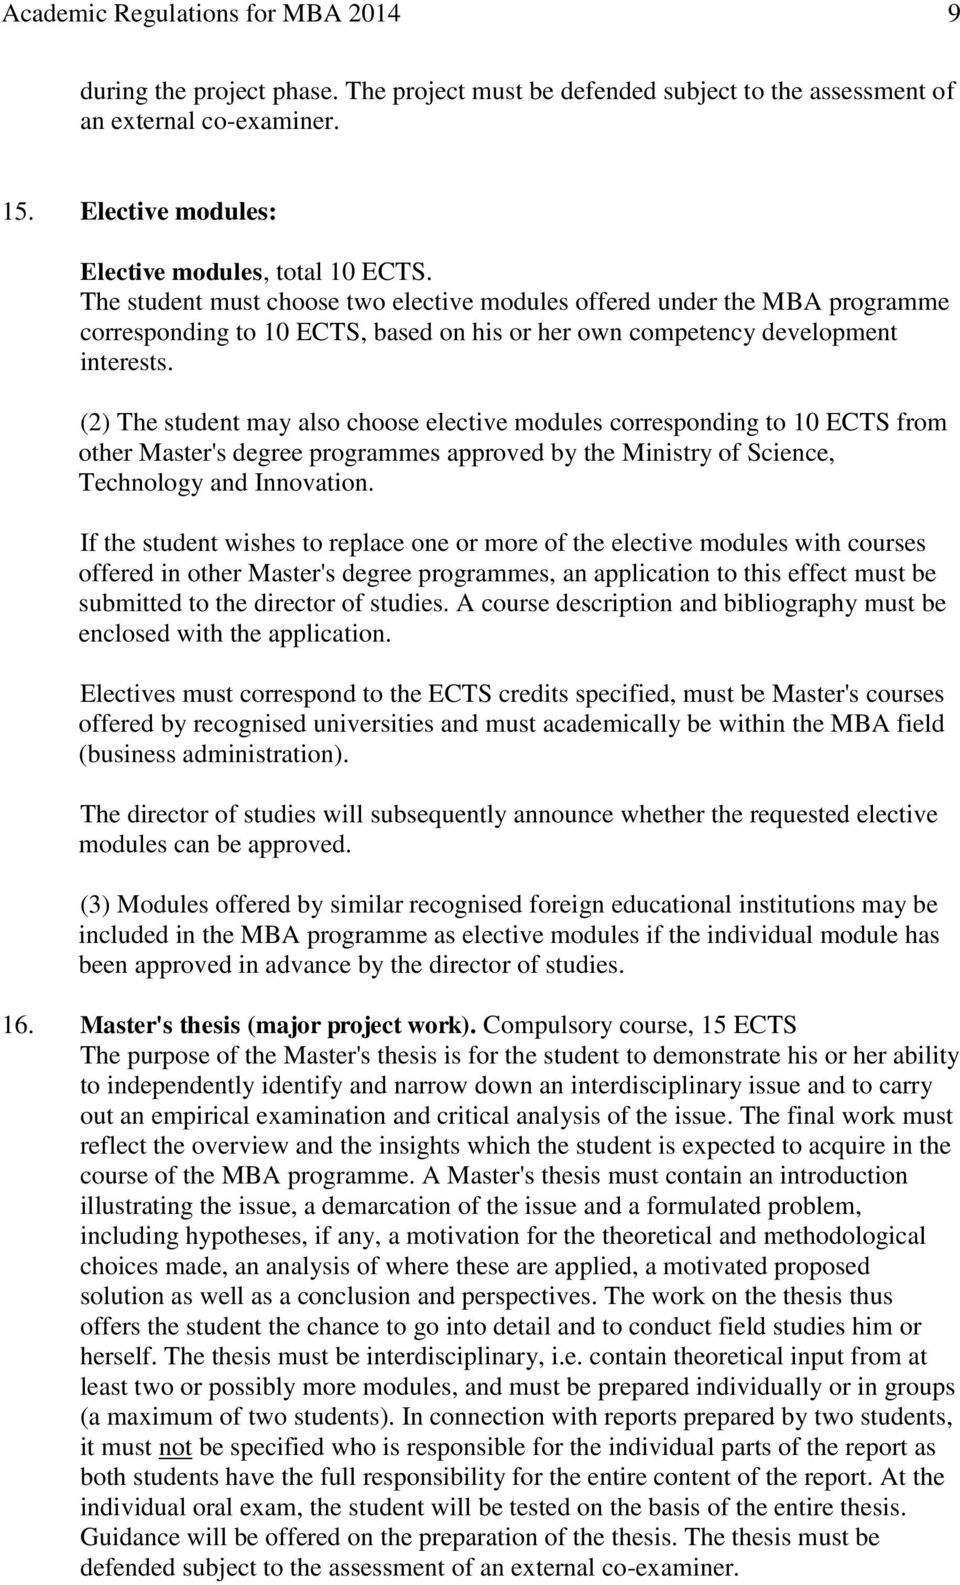 (2) The student may also choose elective modules corresponding to 10 ECTS from other Master's degree programmes approved by the Ministry of Science, Technology and Innovation.